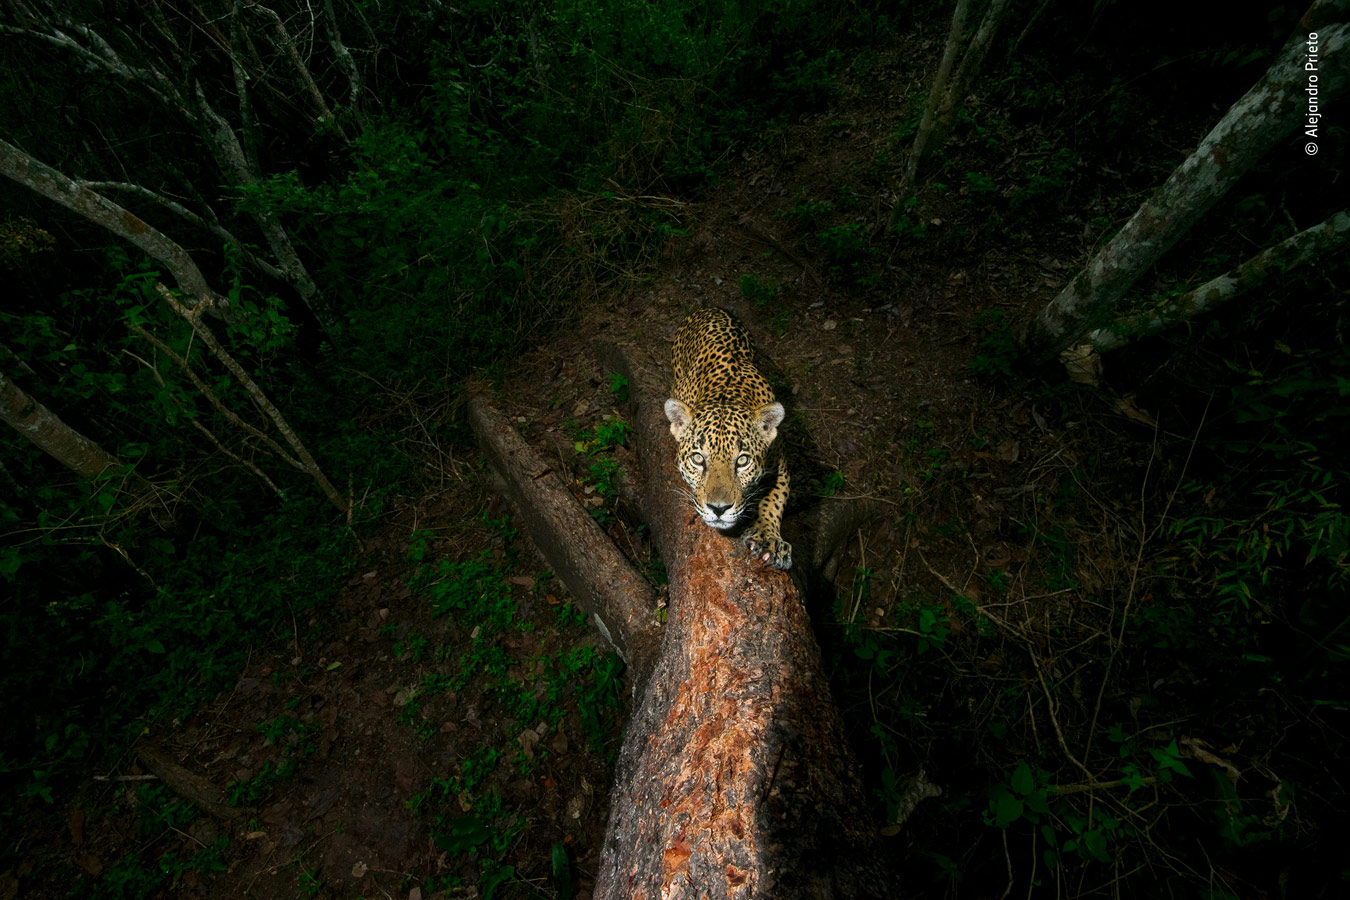 Wildlife Photojournalist Award: Photo Story Category Winner, Gunning for the Jaguar, © Alejandro Prieto, Mexico, Wildlife Photographer of the Year